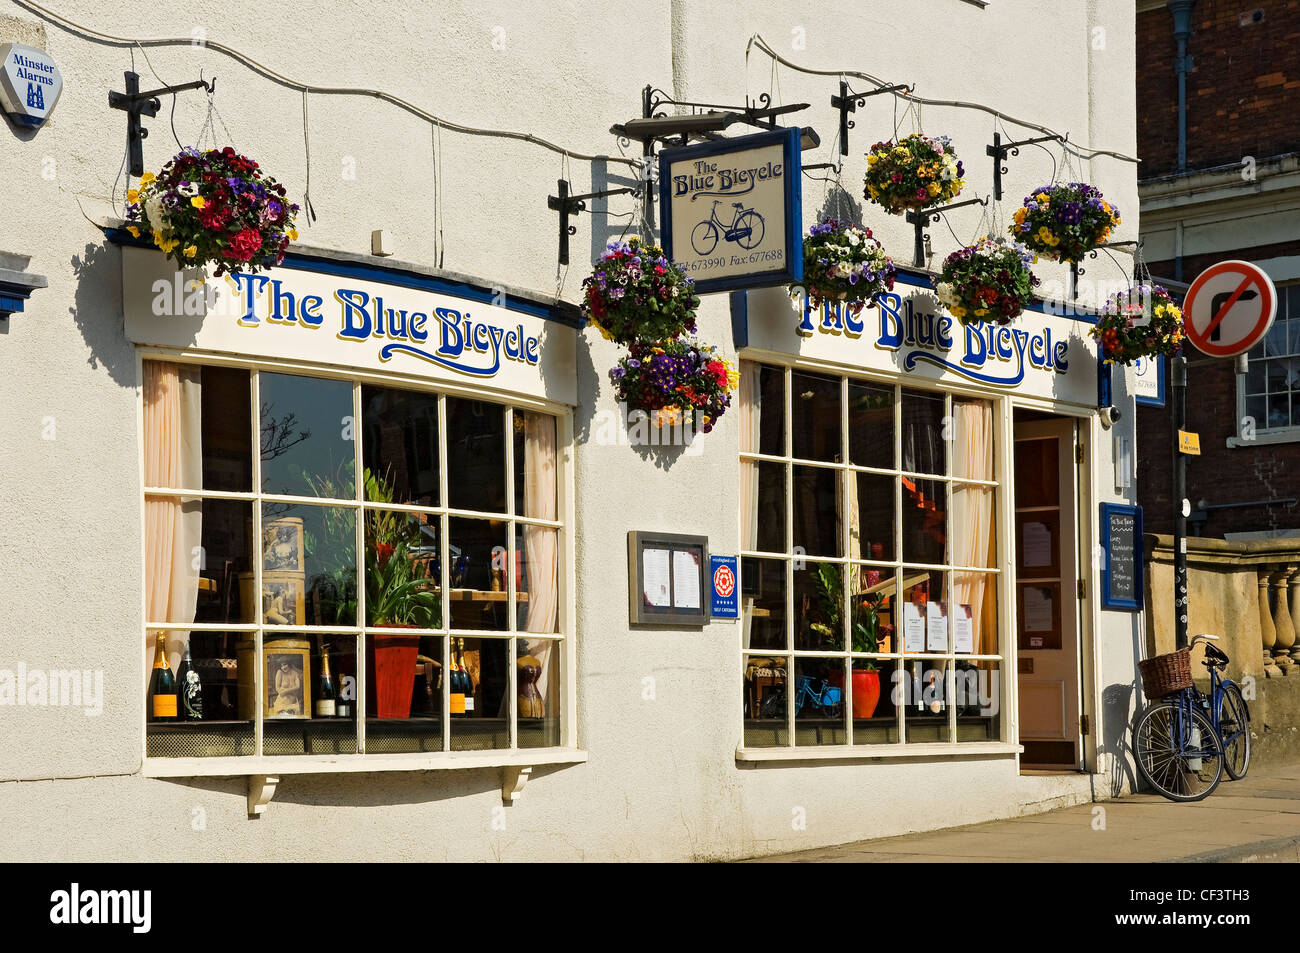 A blue bicycle outside the Blue Bicycle Restaurant in Fossgate. - Stock Image